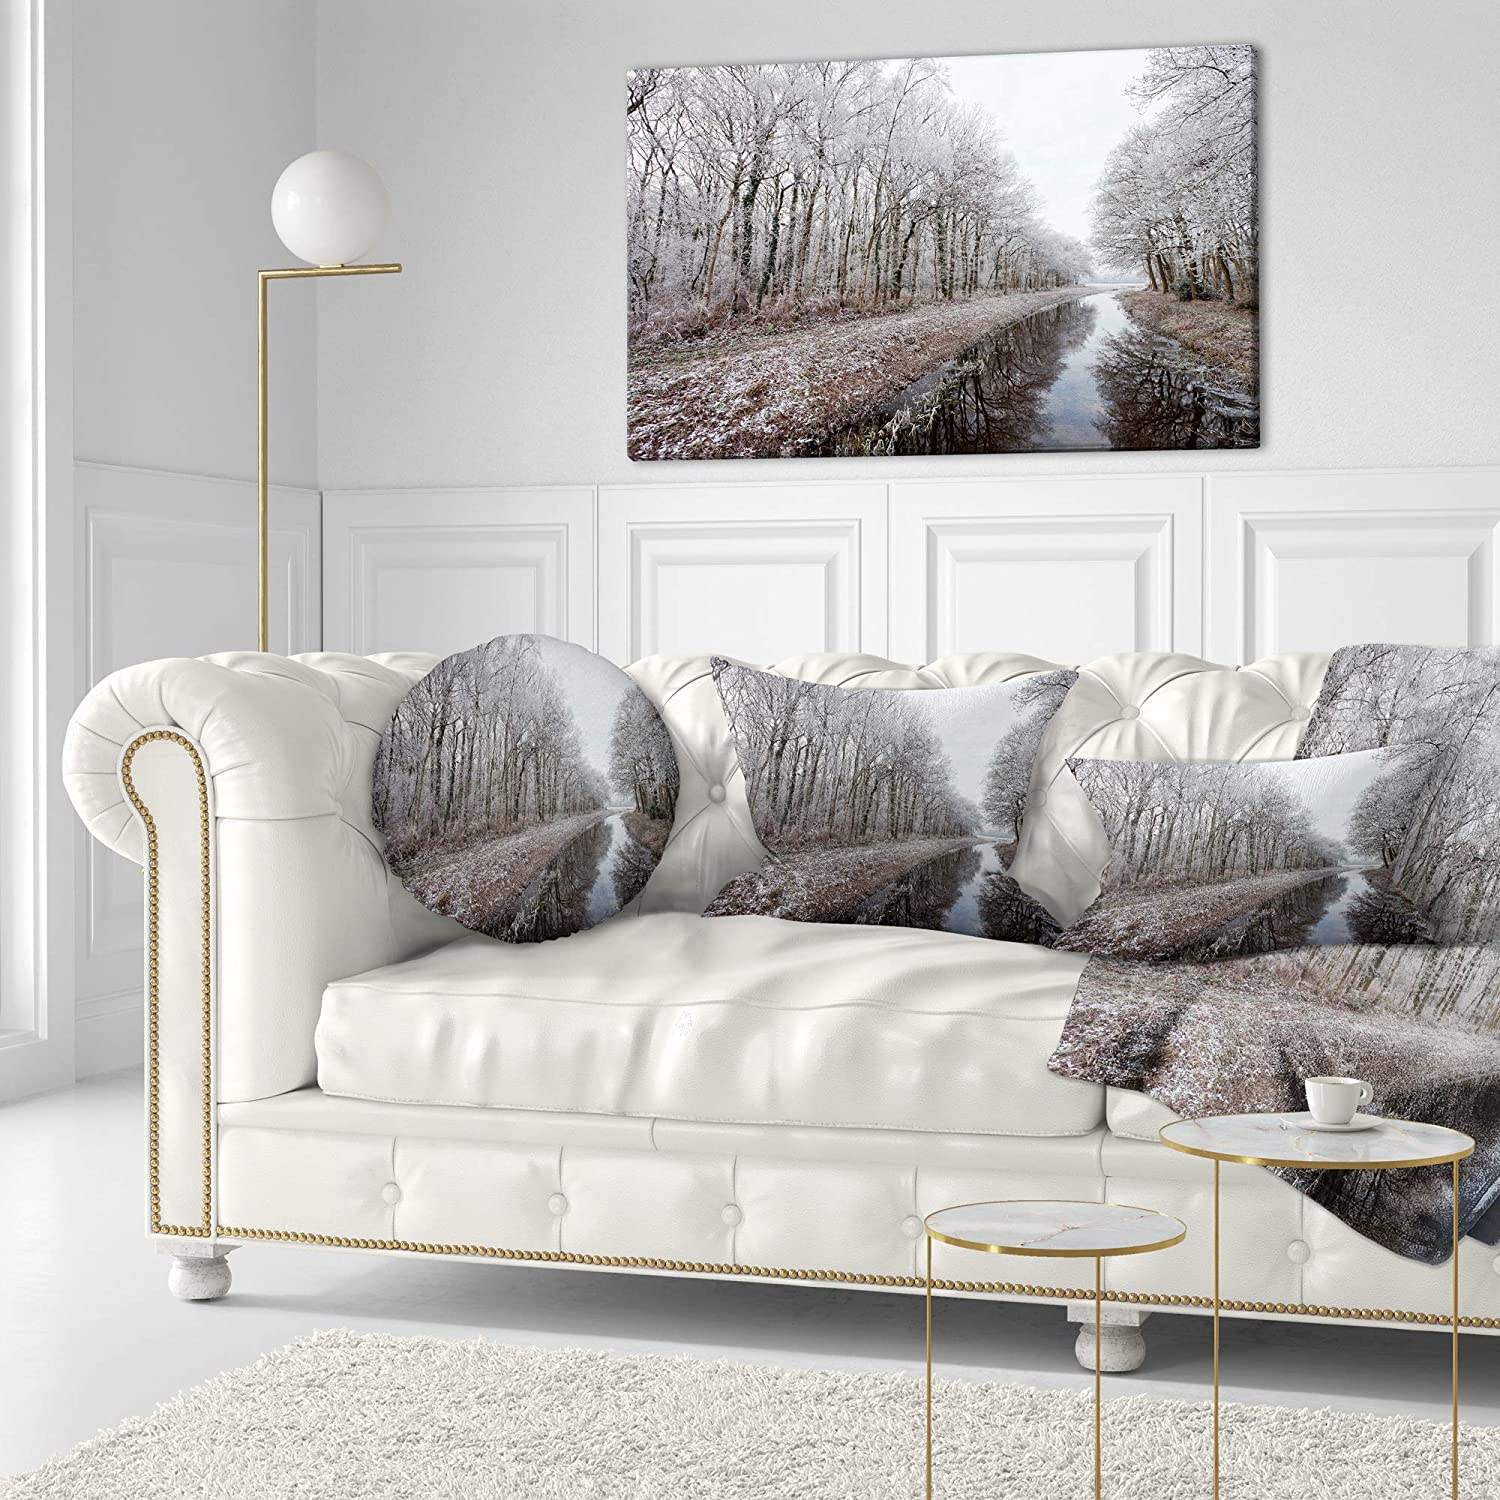 x 20 in 12 in Designart CU14807-12-20 Trees in White Winter Landscape Printed Lumbar Cushion Cover for Living Room Sofa Throw Pillow